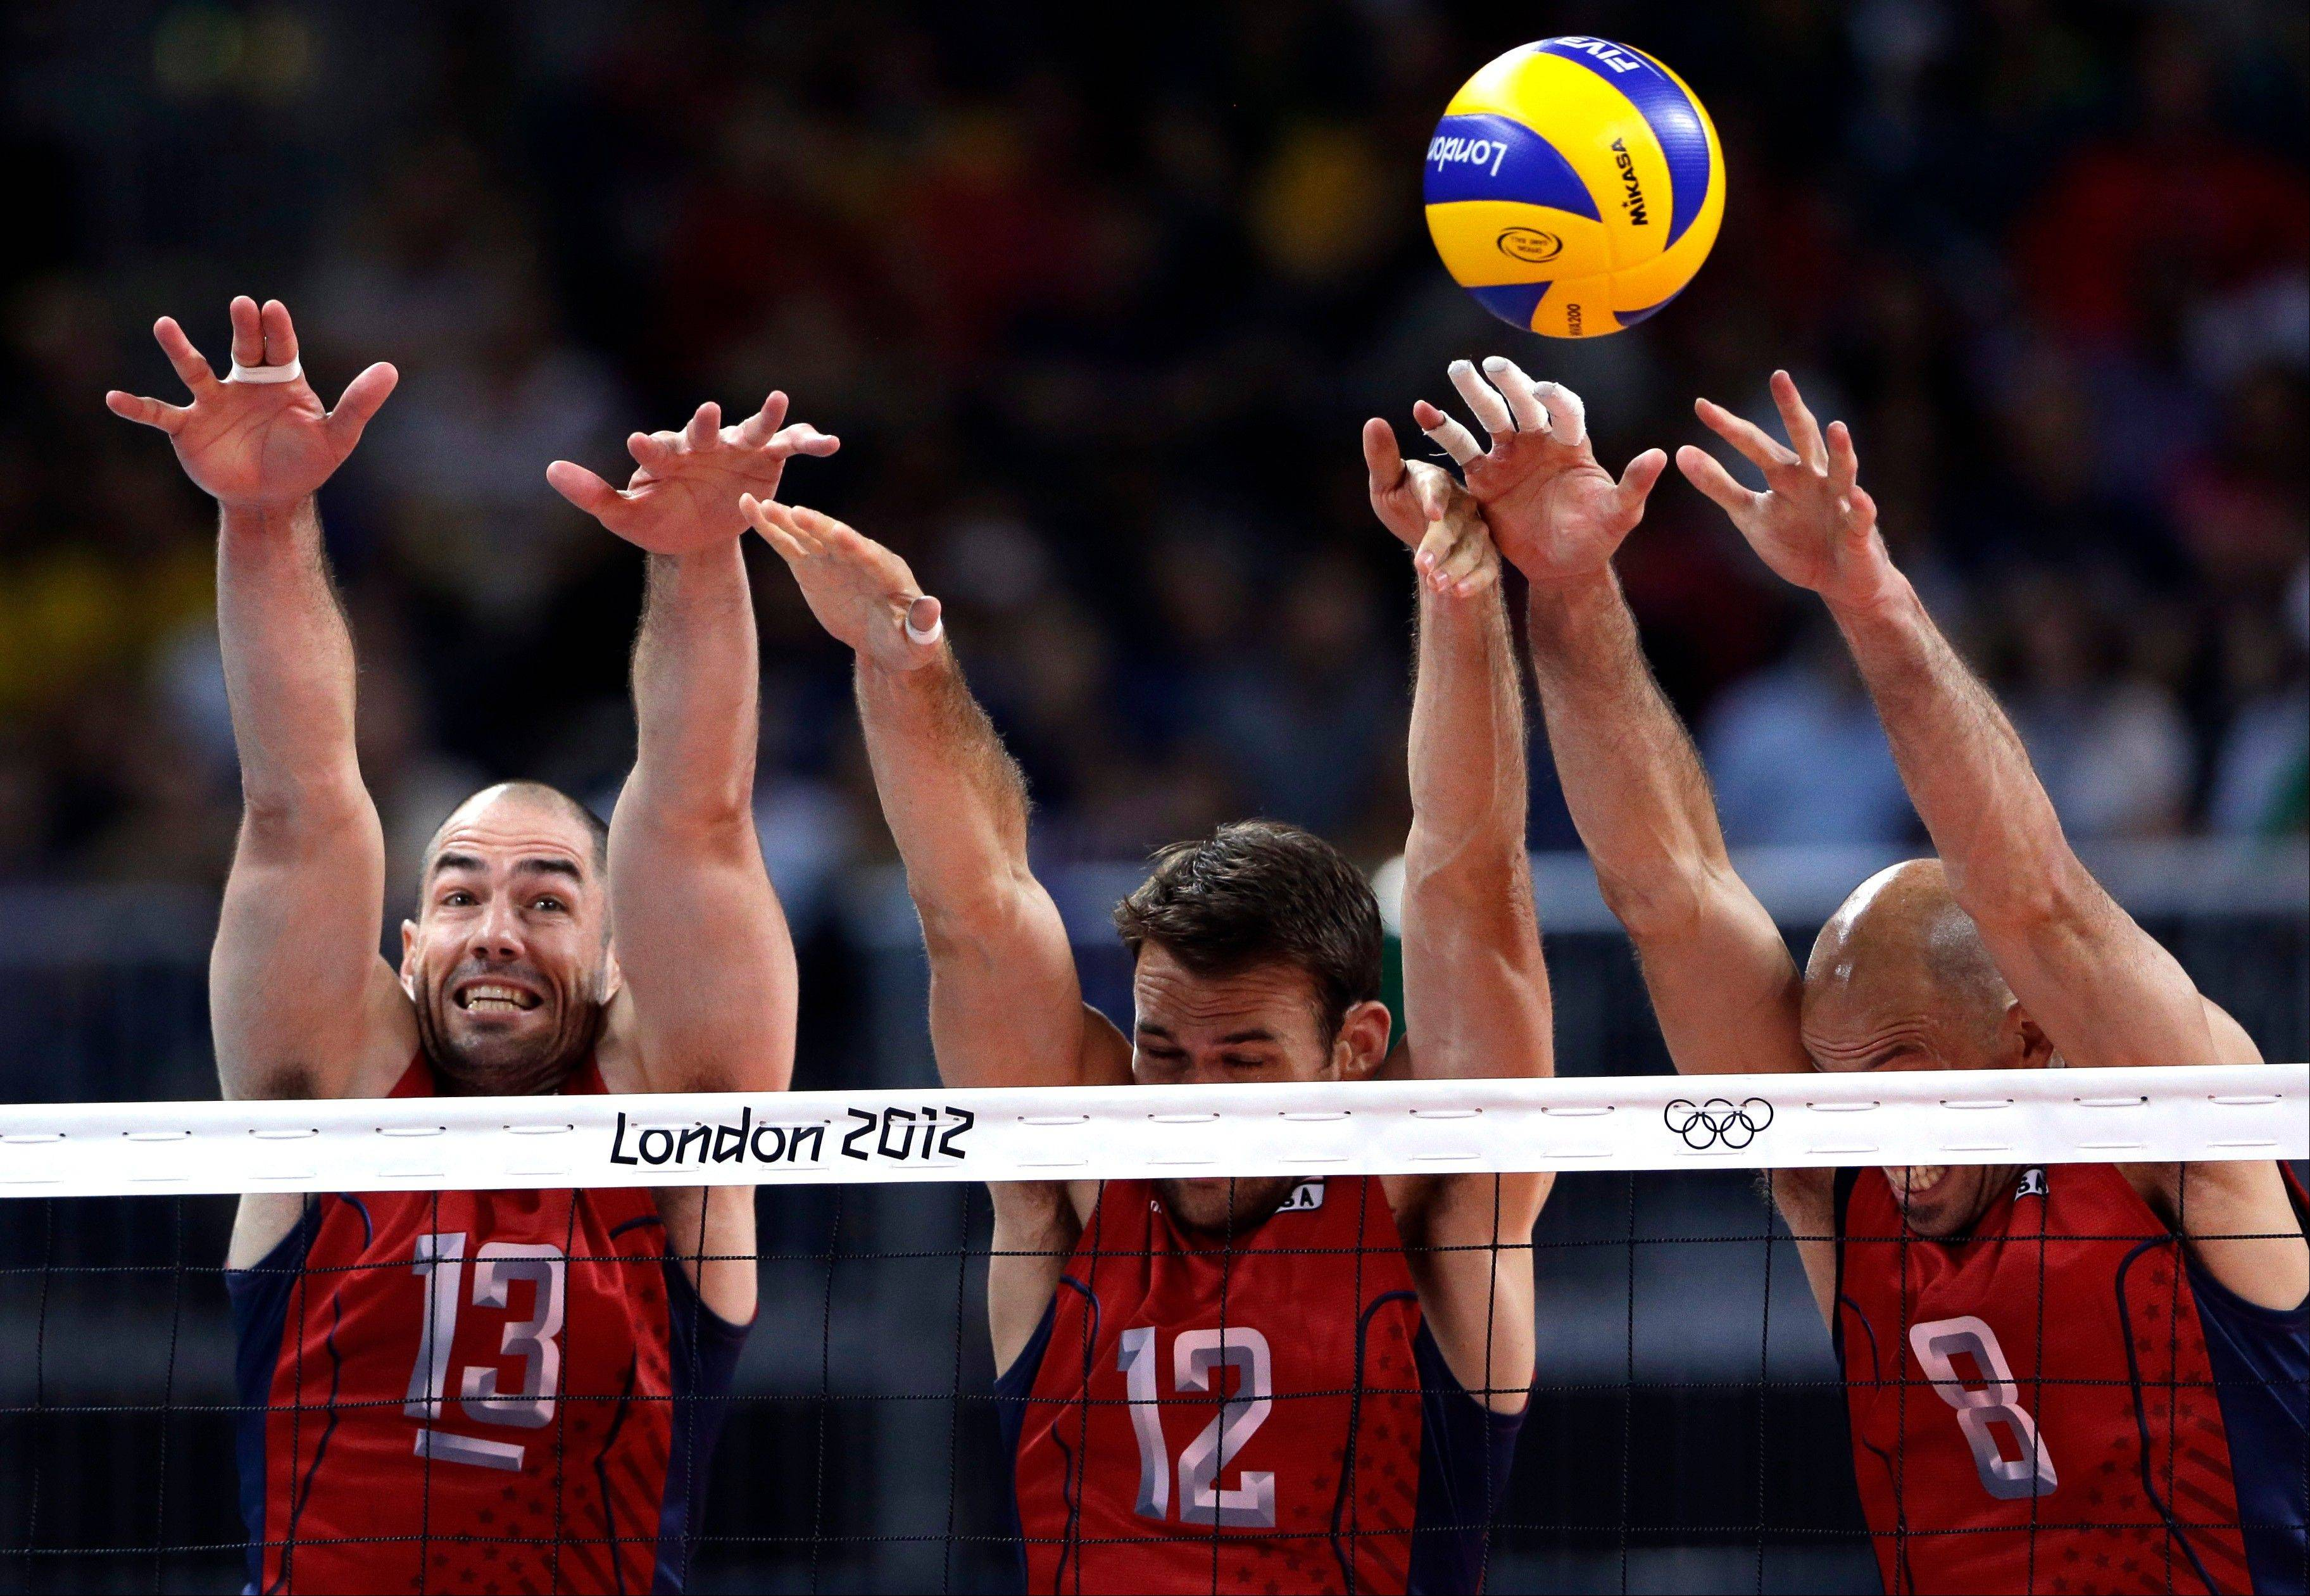 United States' Clayton Stanley, left, Russell Holmes, center, and William Priddy attempt to block a shot during a men's preliminary volleyball match against Russia at the 2012 Summer Olympics, Saturday, Aug. 4, 2012, in London.